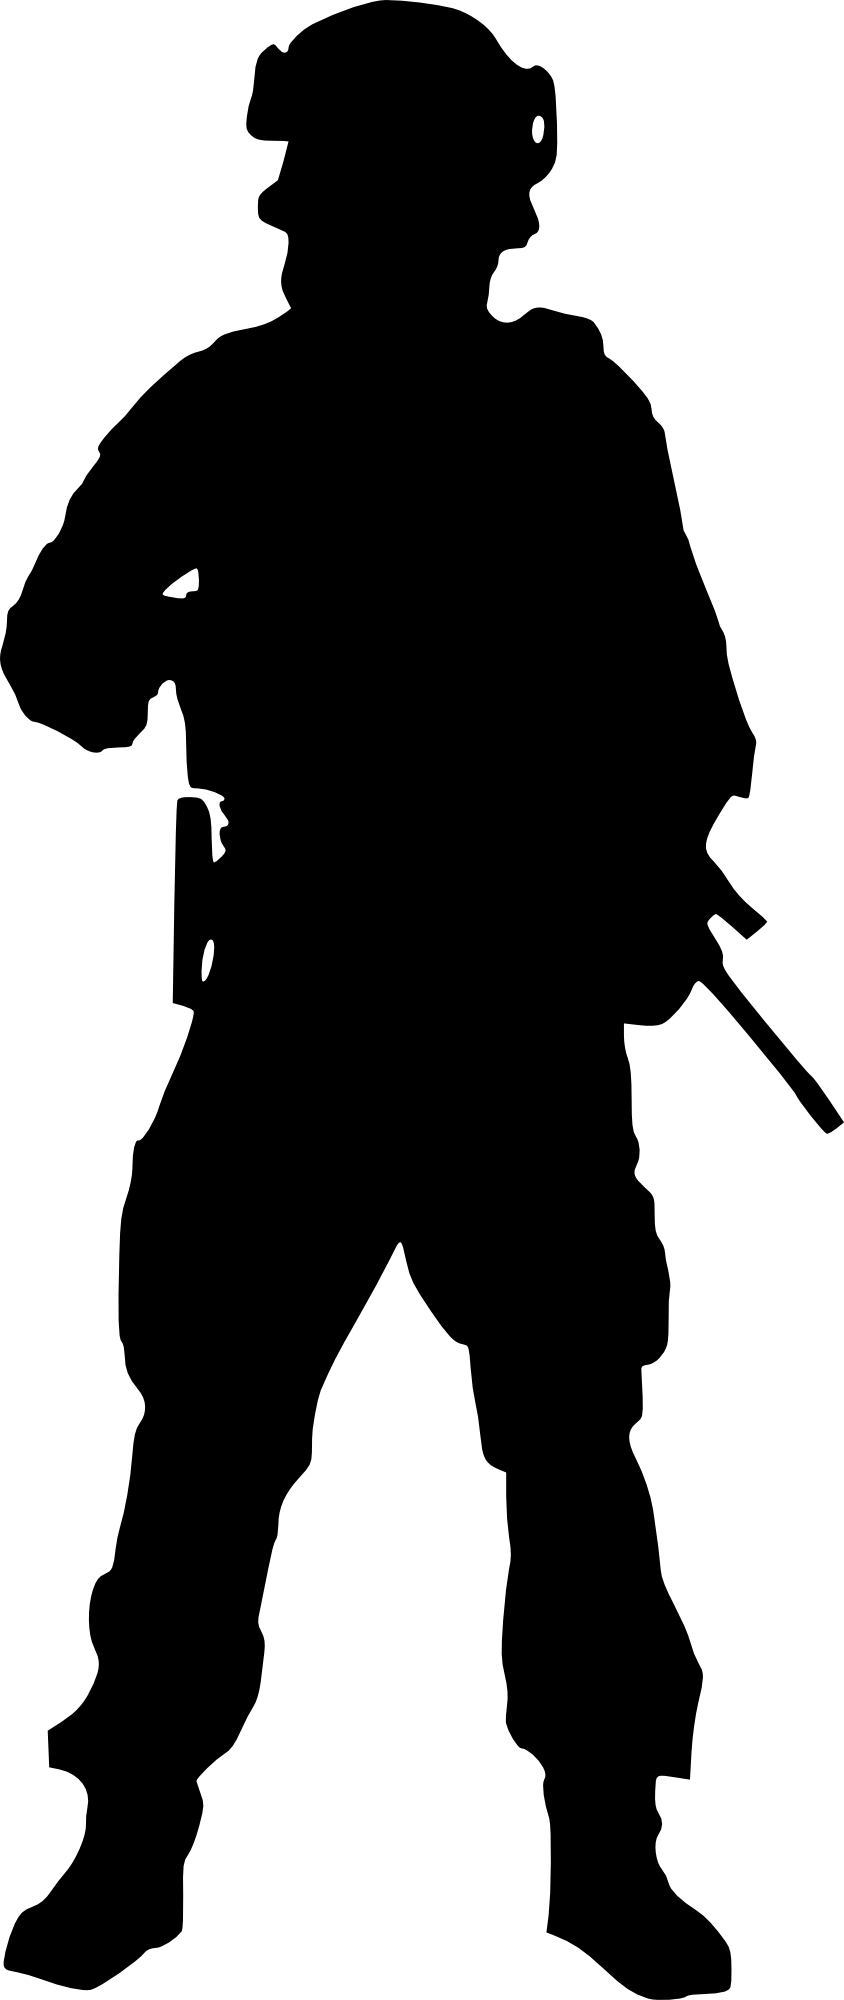 female soldier silhouette female soldier silhouette at getdrawings free download soldier silhouette female